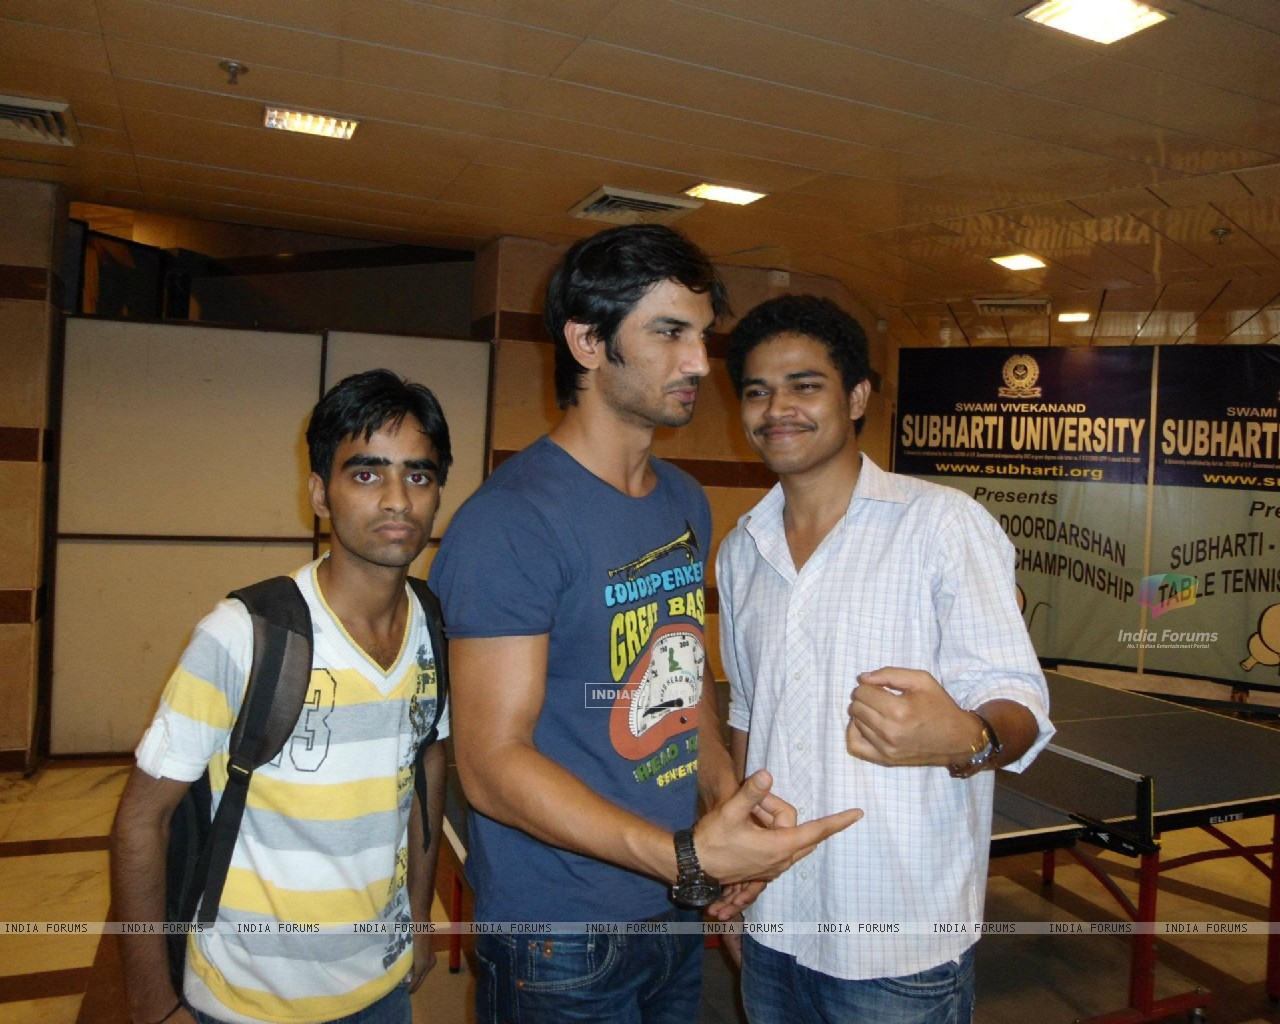 Sushant Singh Rajput With Fans At Subharti University (205732) size:1280x1024